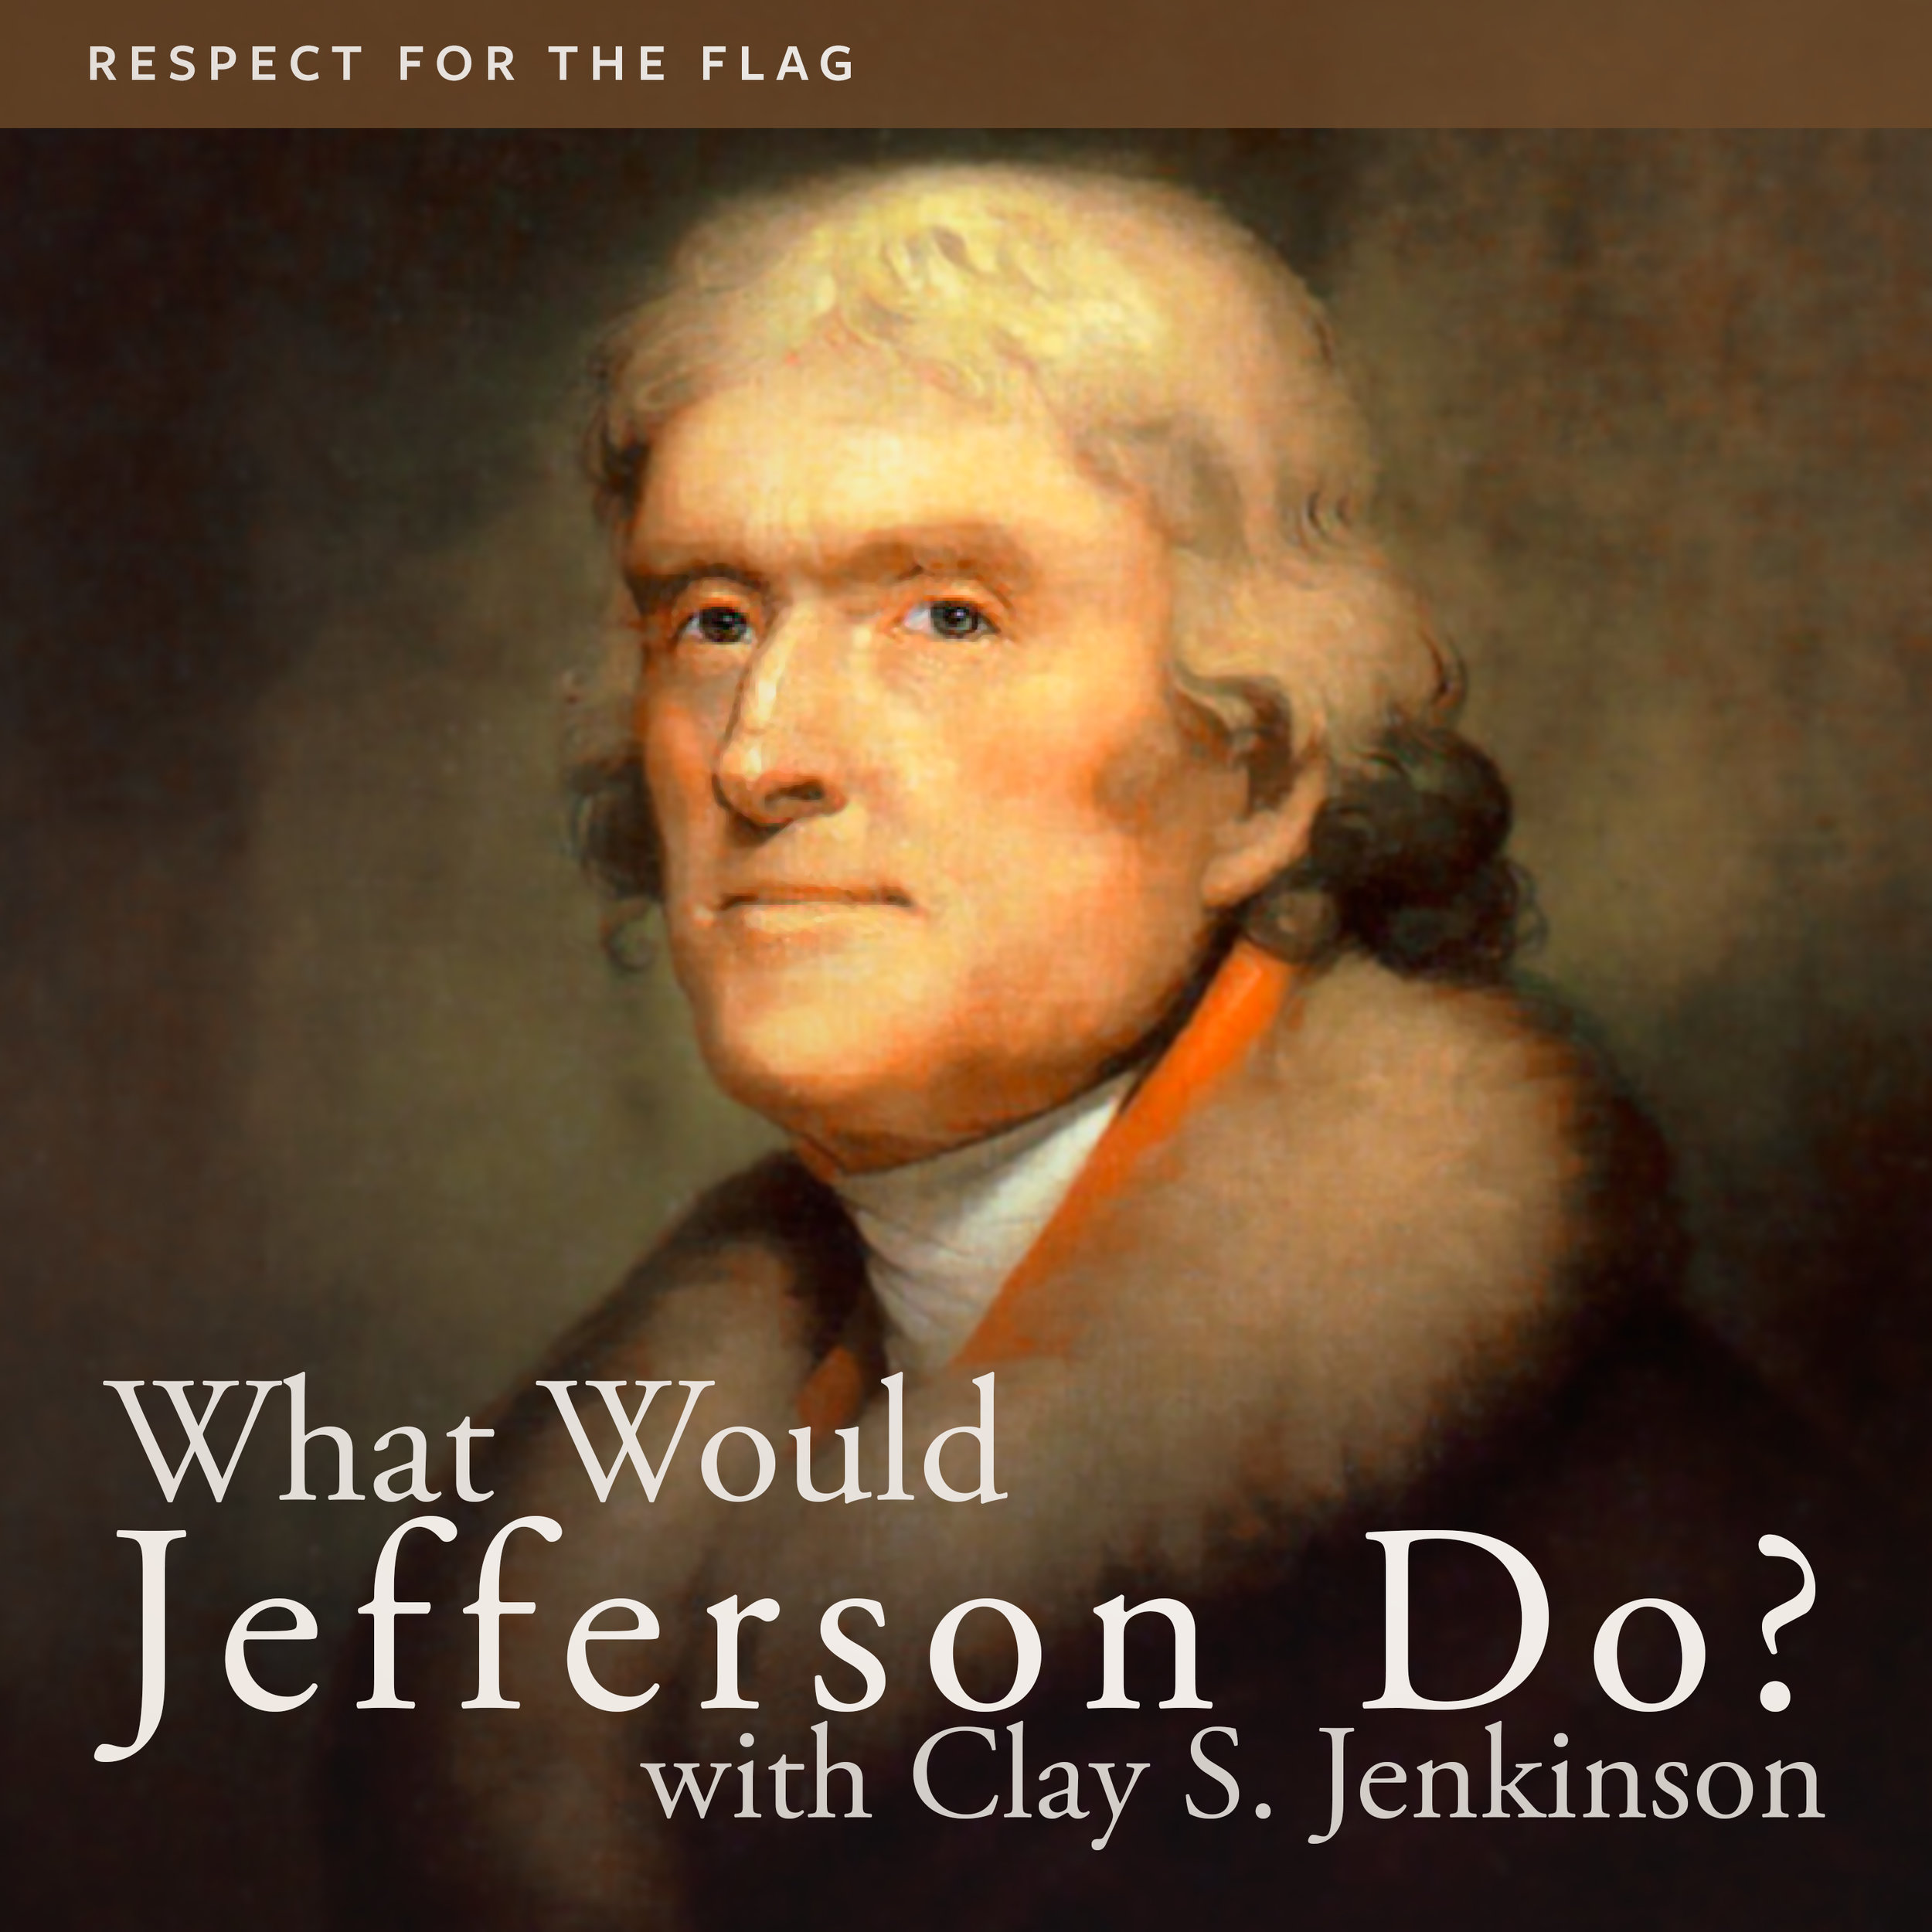 What would Jefferson do? Respect for the Flag